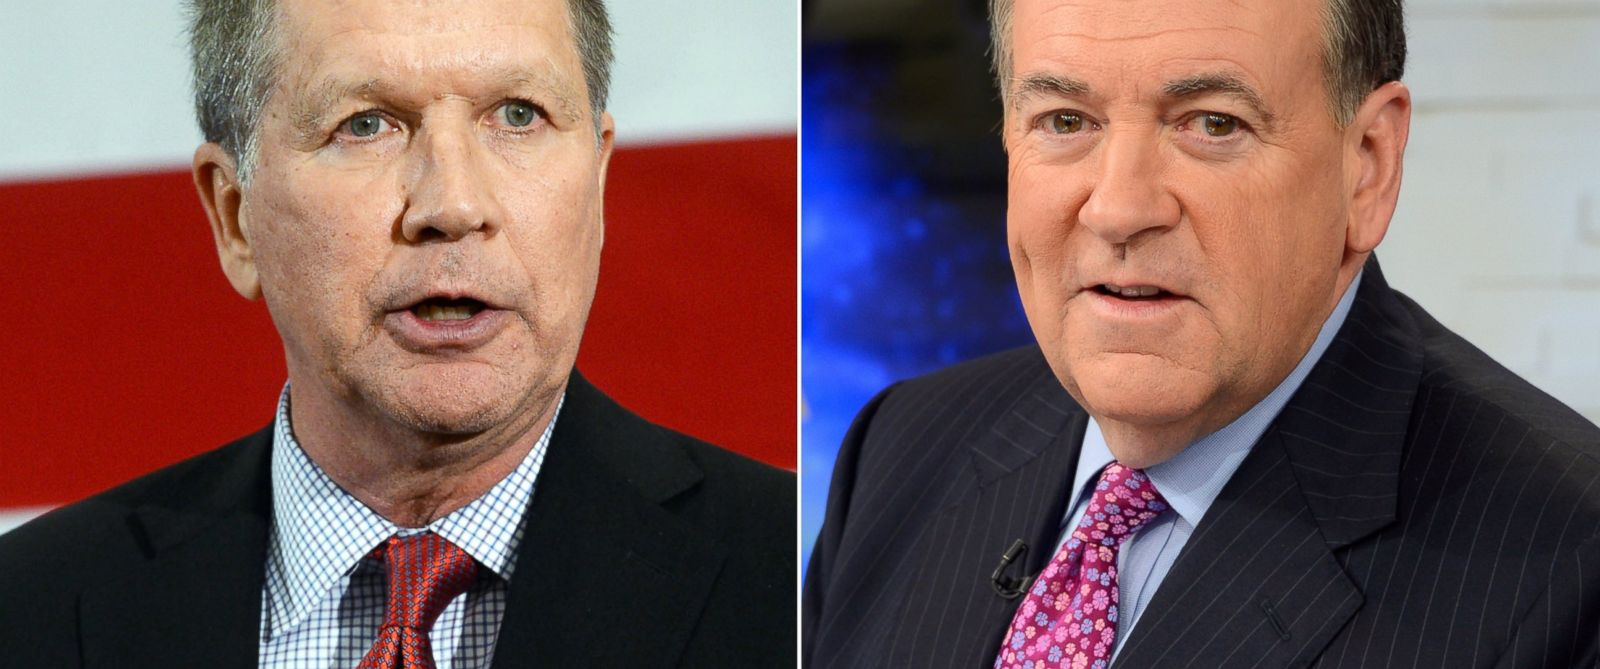 """PHOTO: John Kasich speaks at an event in Nashua, N.H. on April 18, 2015 and Mike Huckabee appears on """"Good Morning America"""" on May 6, 2015."""